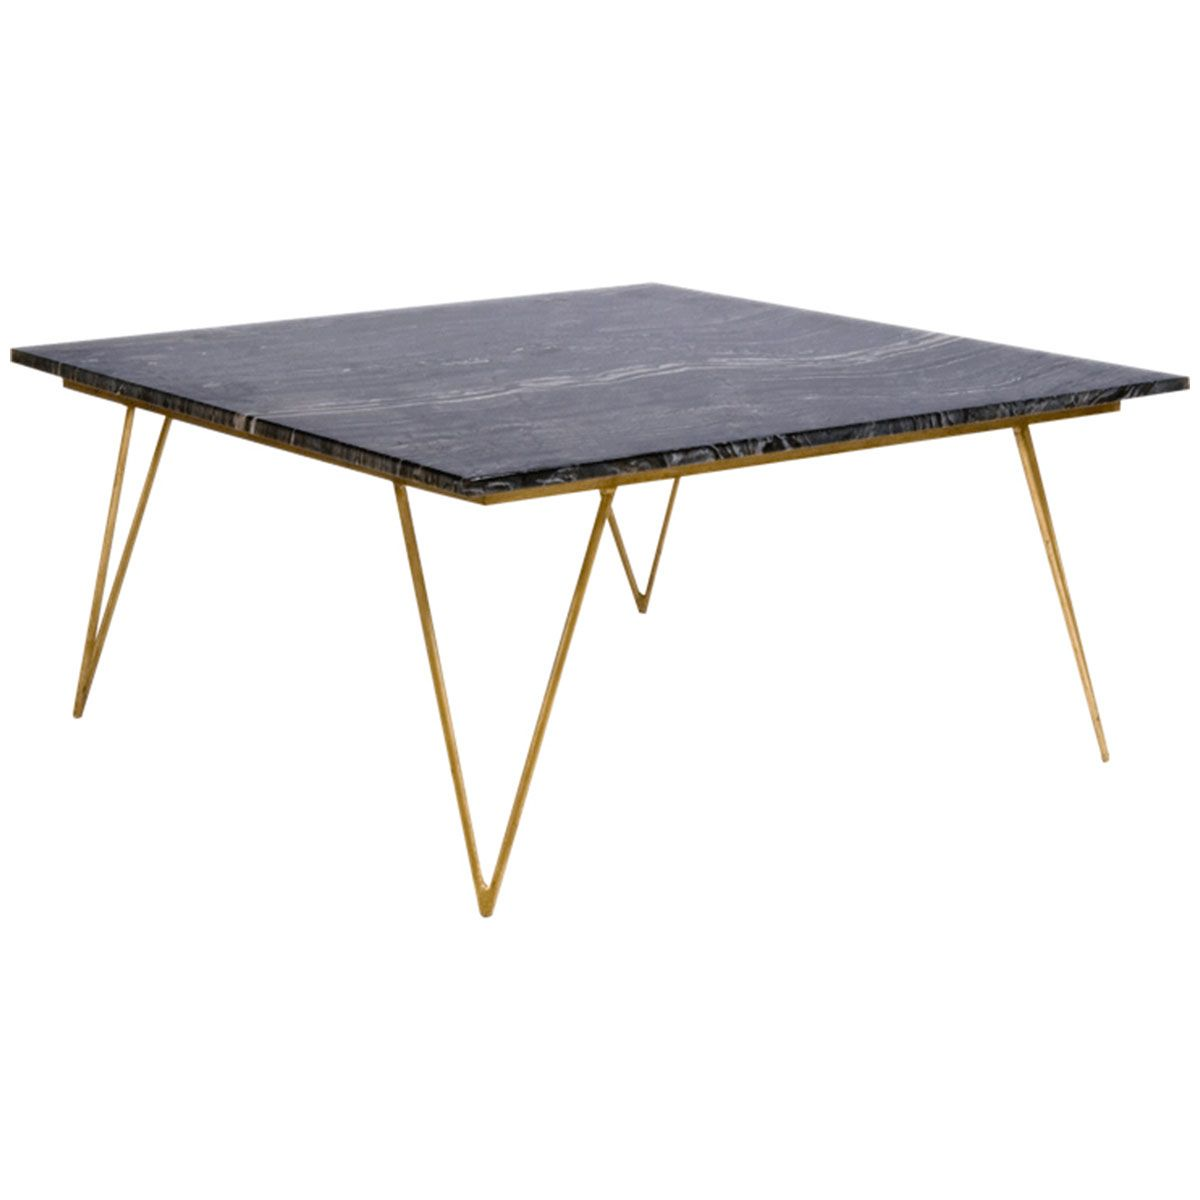 Worlds Away Hairpin Leg Gold Leaf Coffee Table With Black Marble Top Neal Gb Marble Top Coffee Table Black Marble Coffee Table Gold Coffee Table